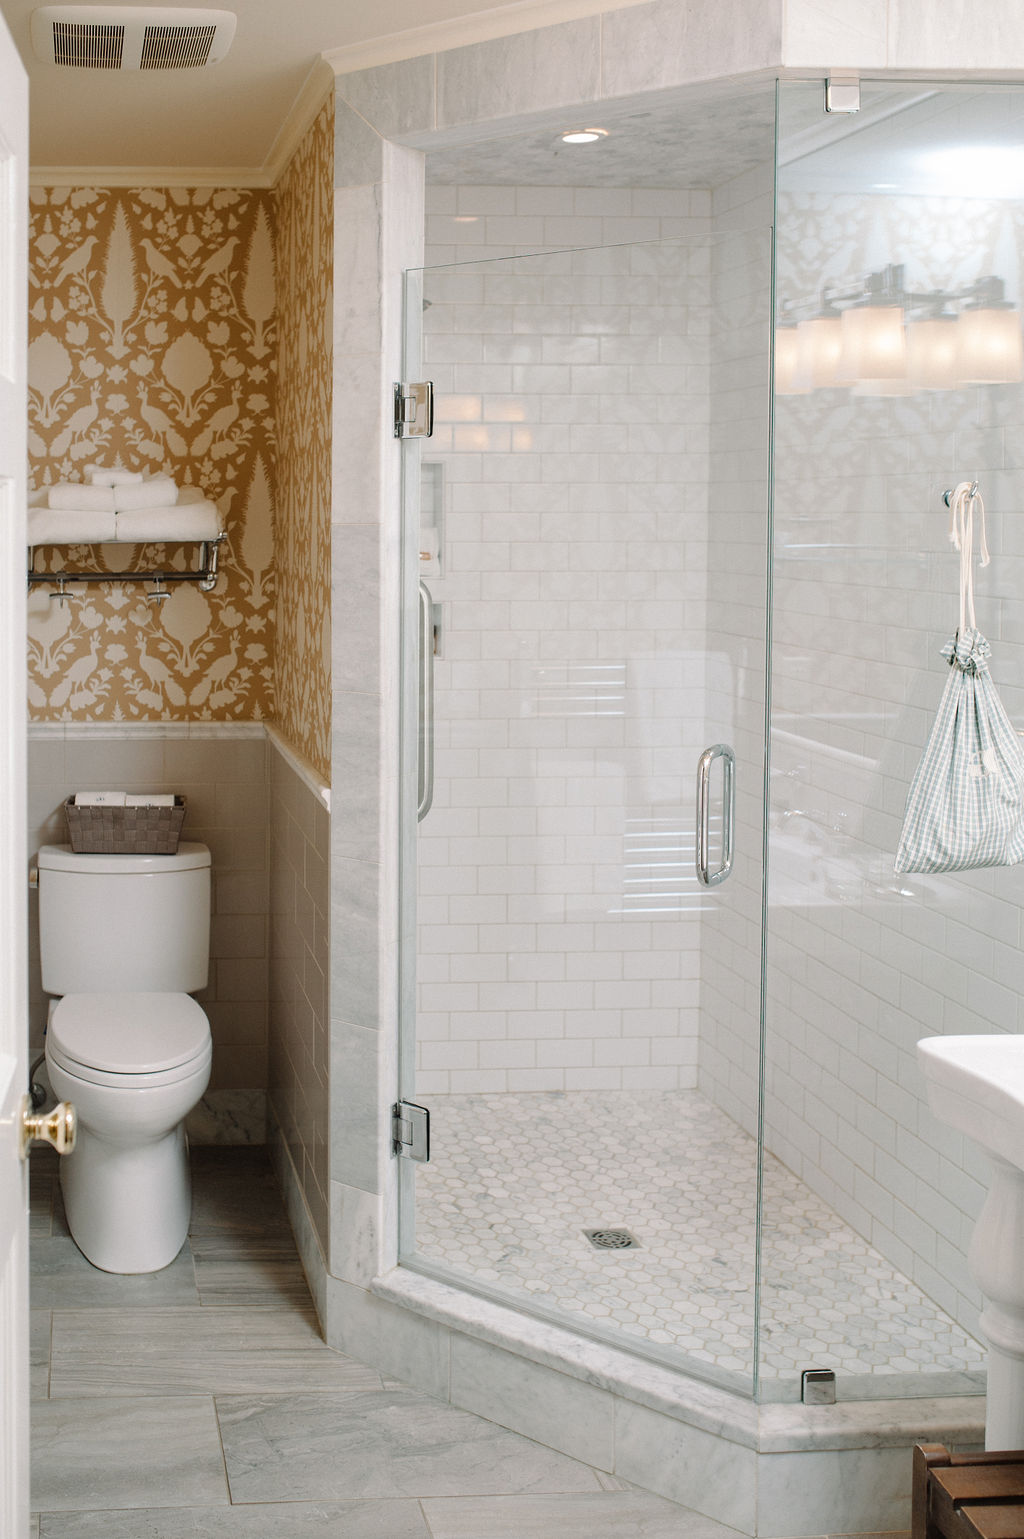 Walk in shower and patterned yellow and white wallpaper in bathroom of Room 9